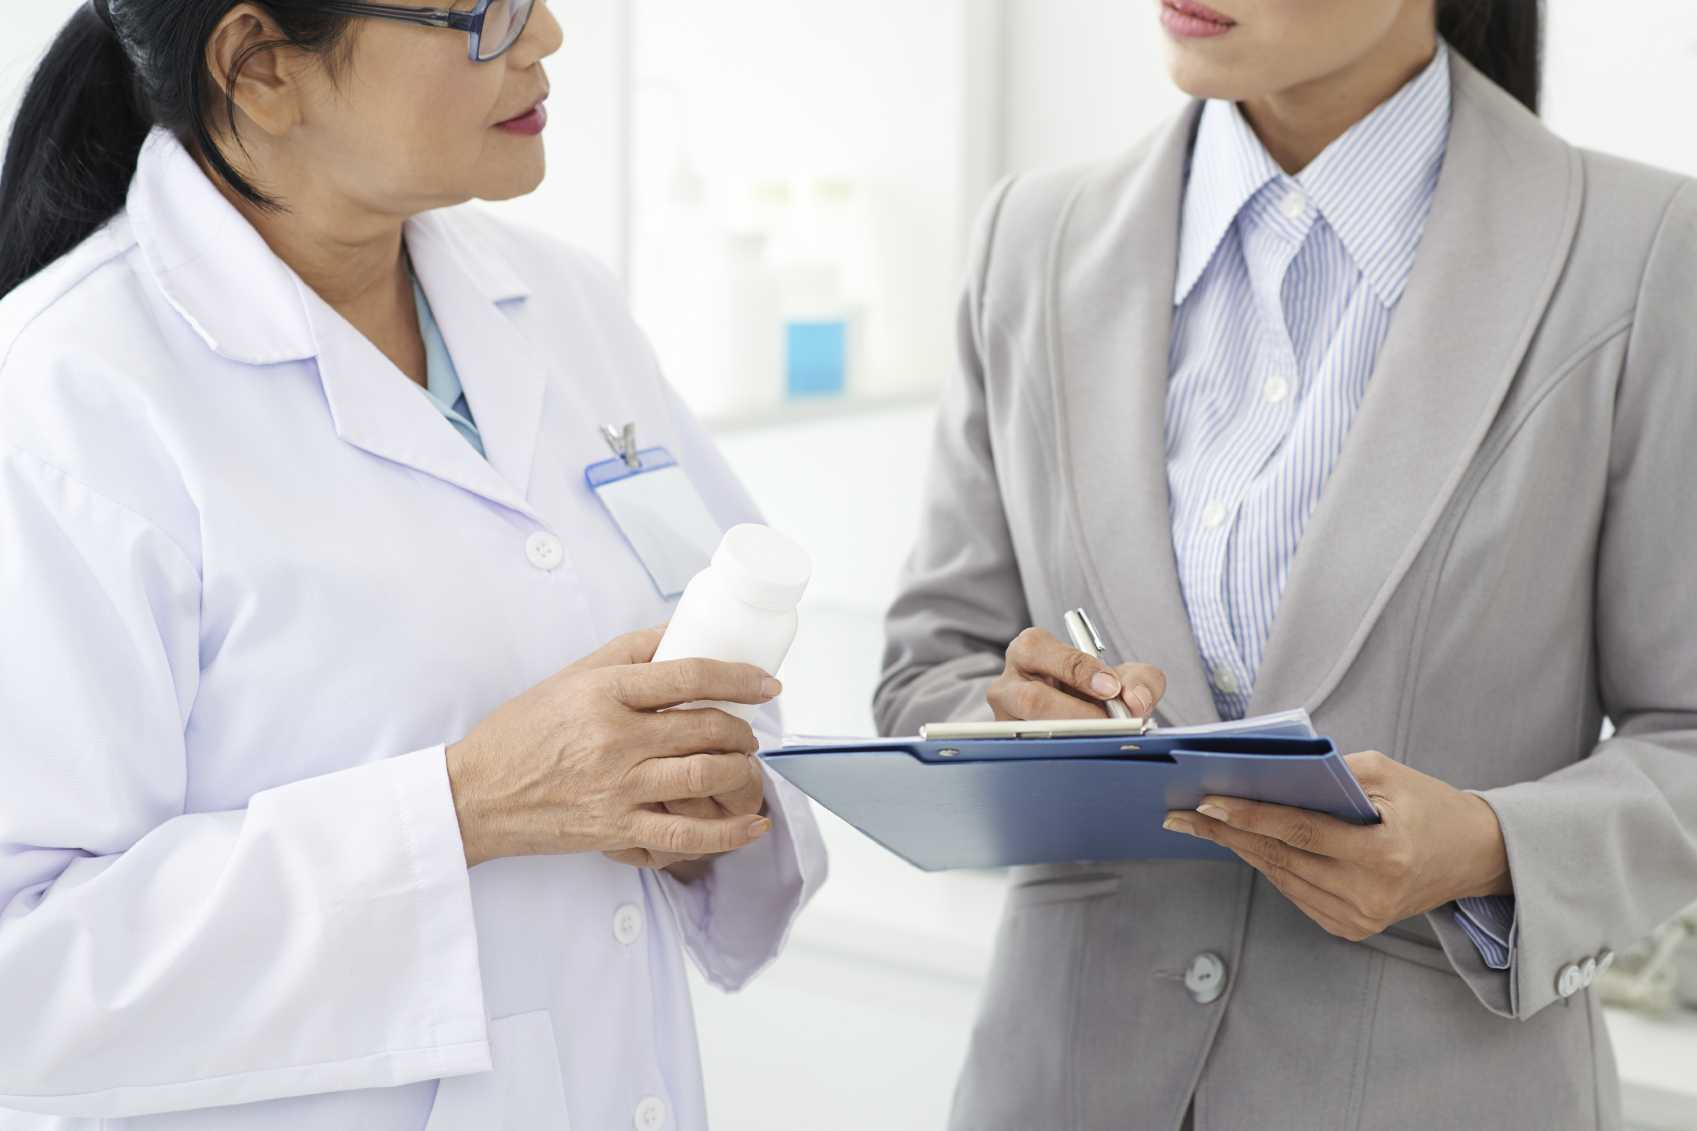 Communicating with Healthcare Professionals